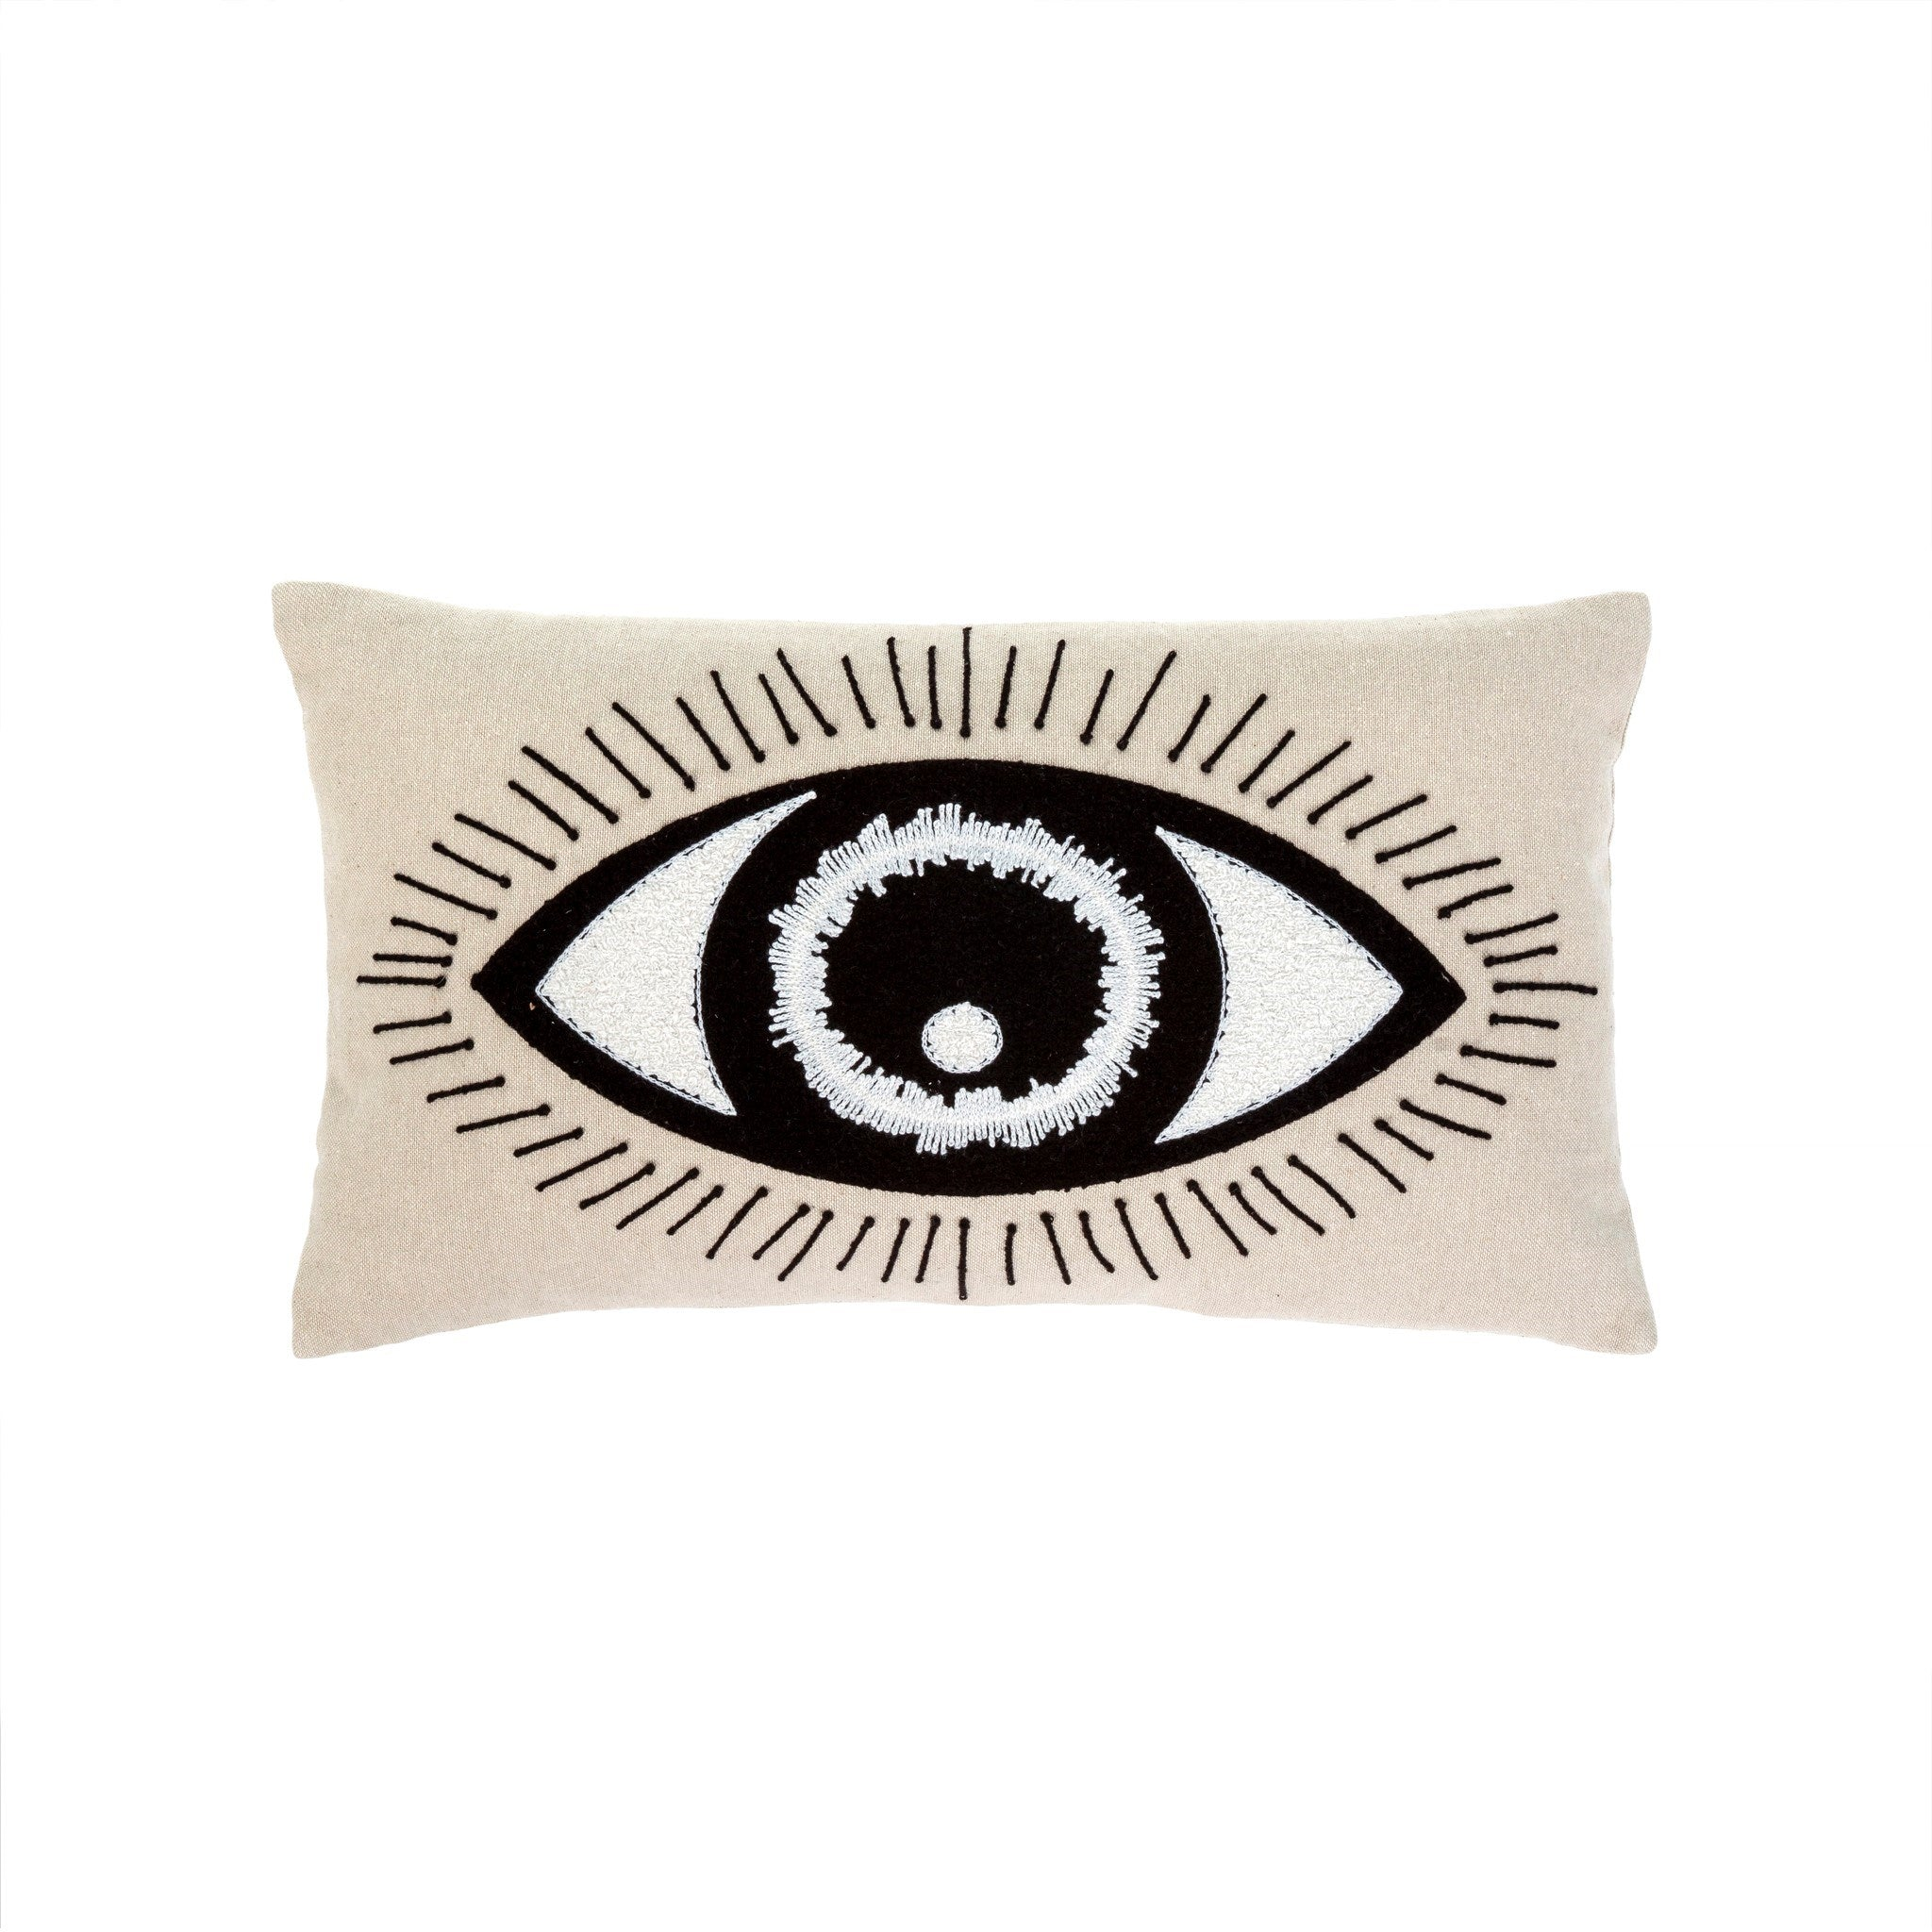 BRIGHT EYED PILLOW